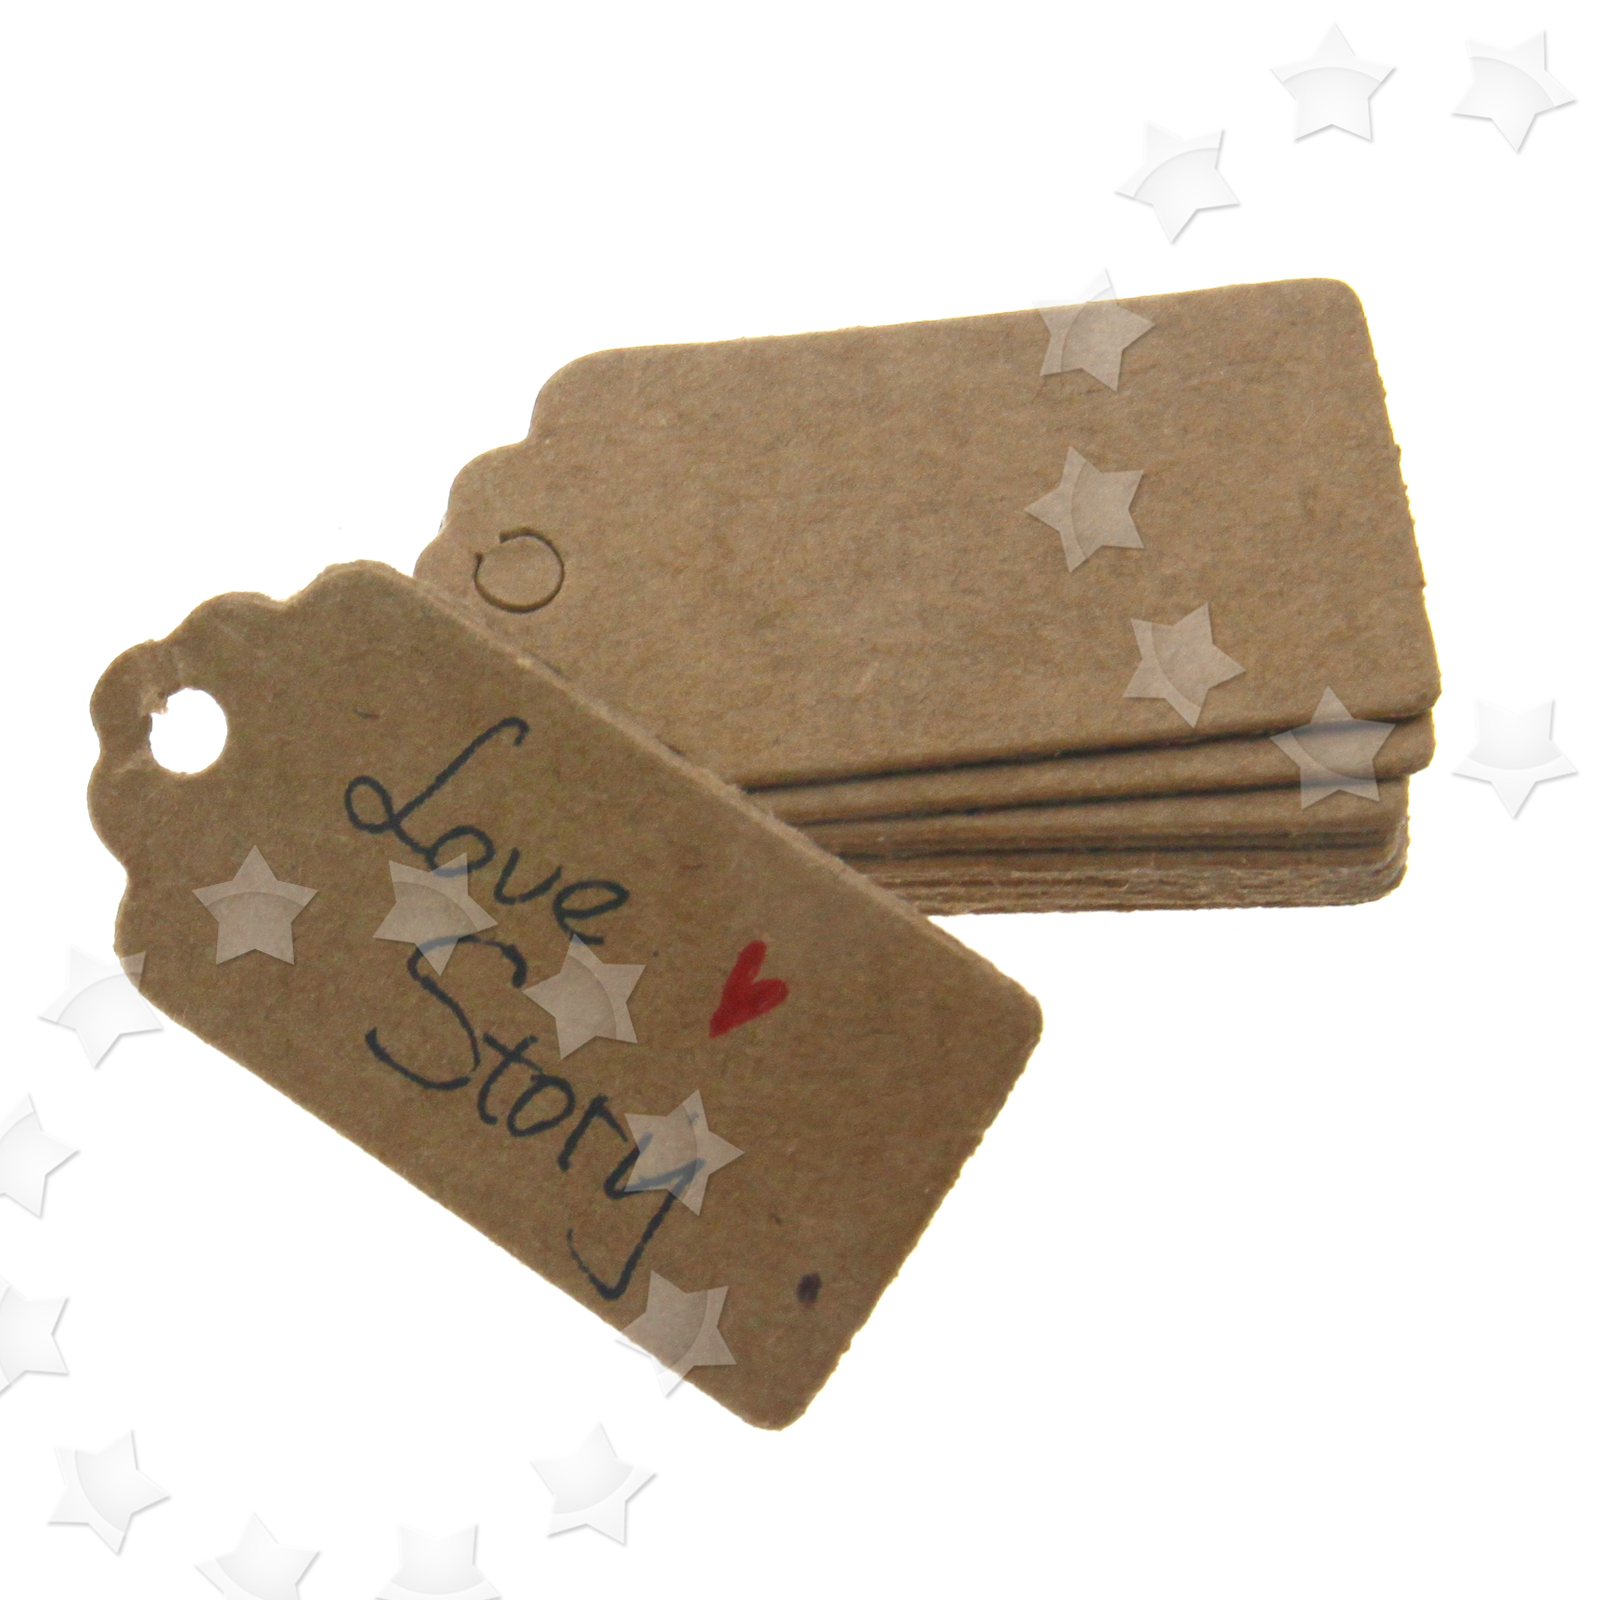 ... Paper Hang Tags Gift Price Party Wedding Label Cards 4 2cm eBay